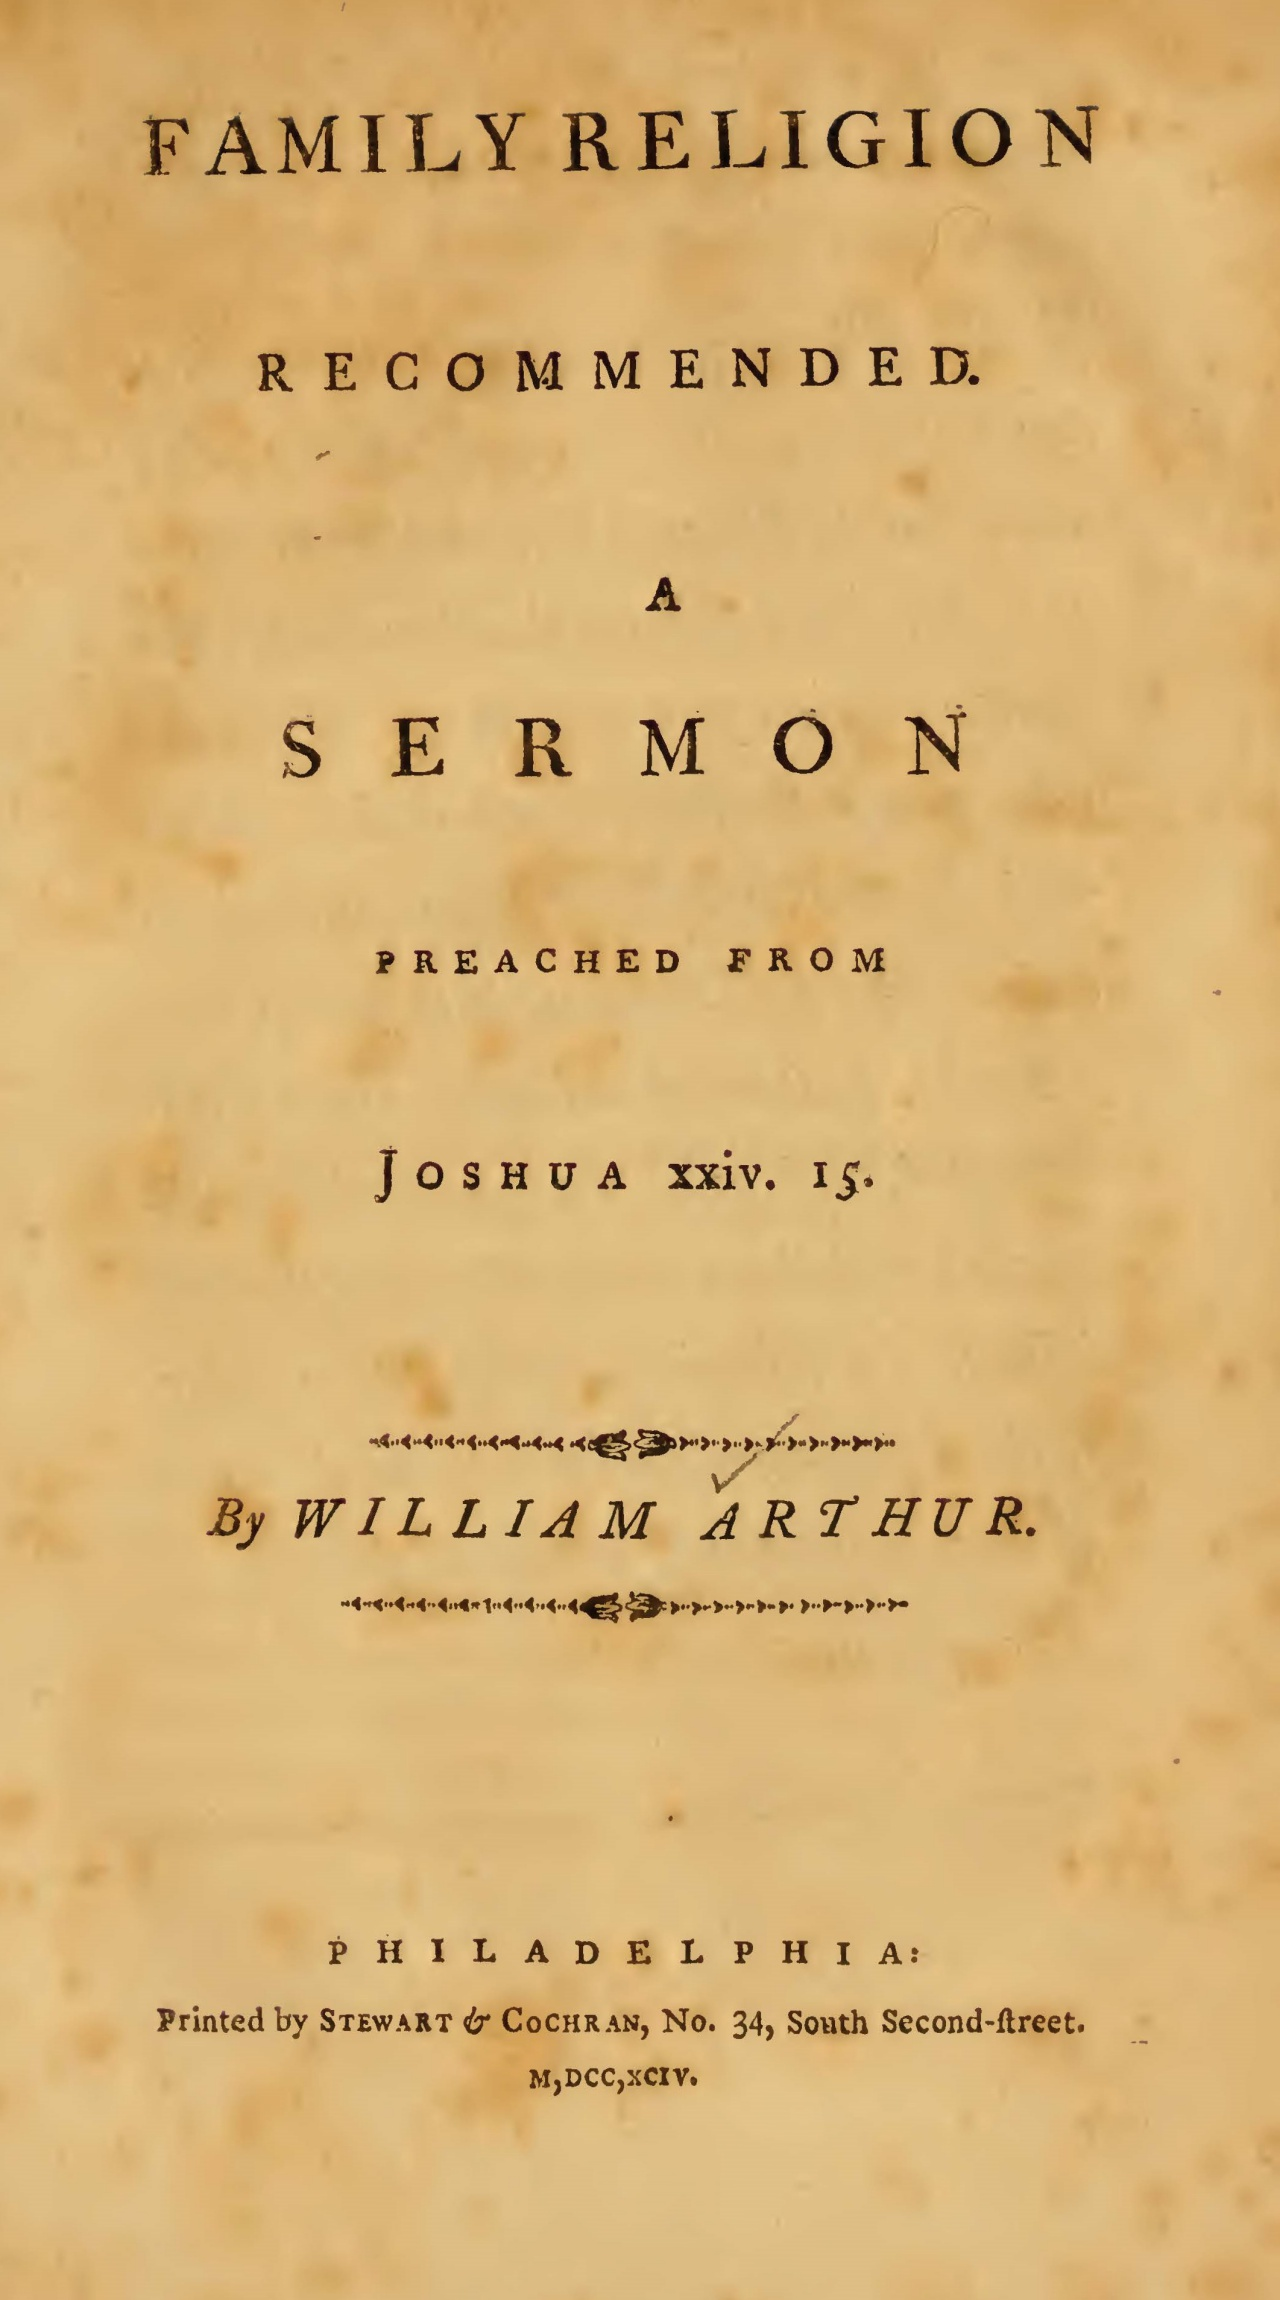 Arthur, William, Family Religion Recommended Title Page.jpg